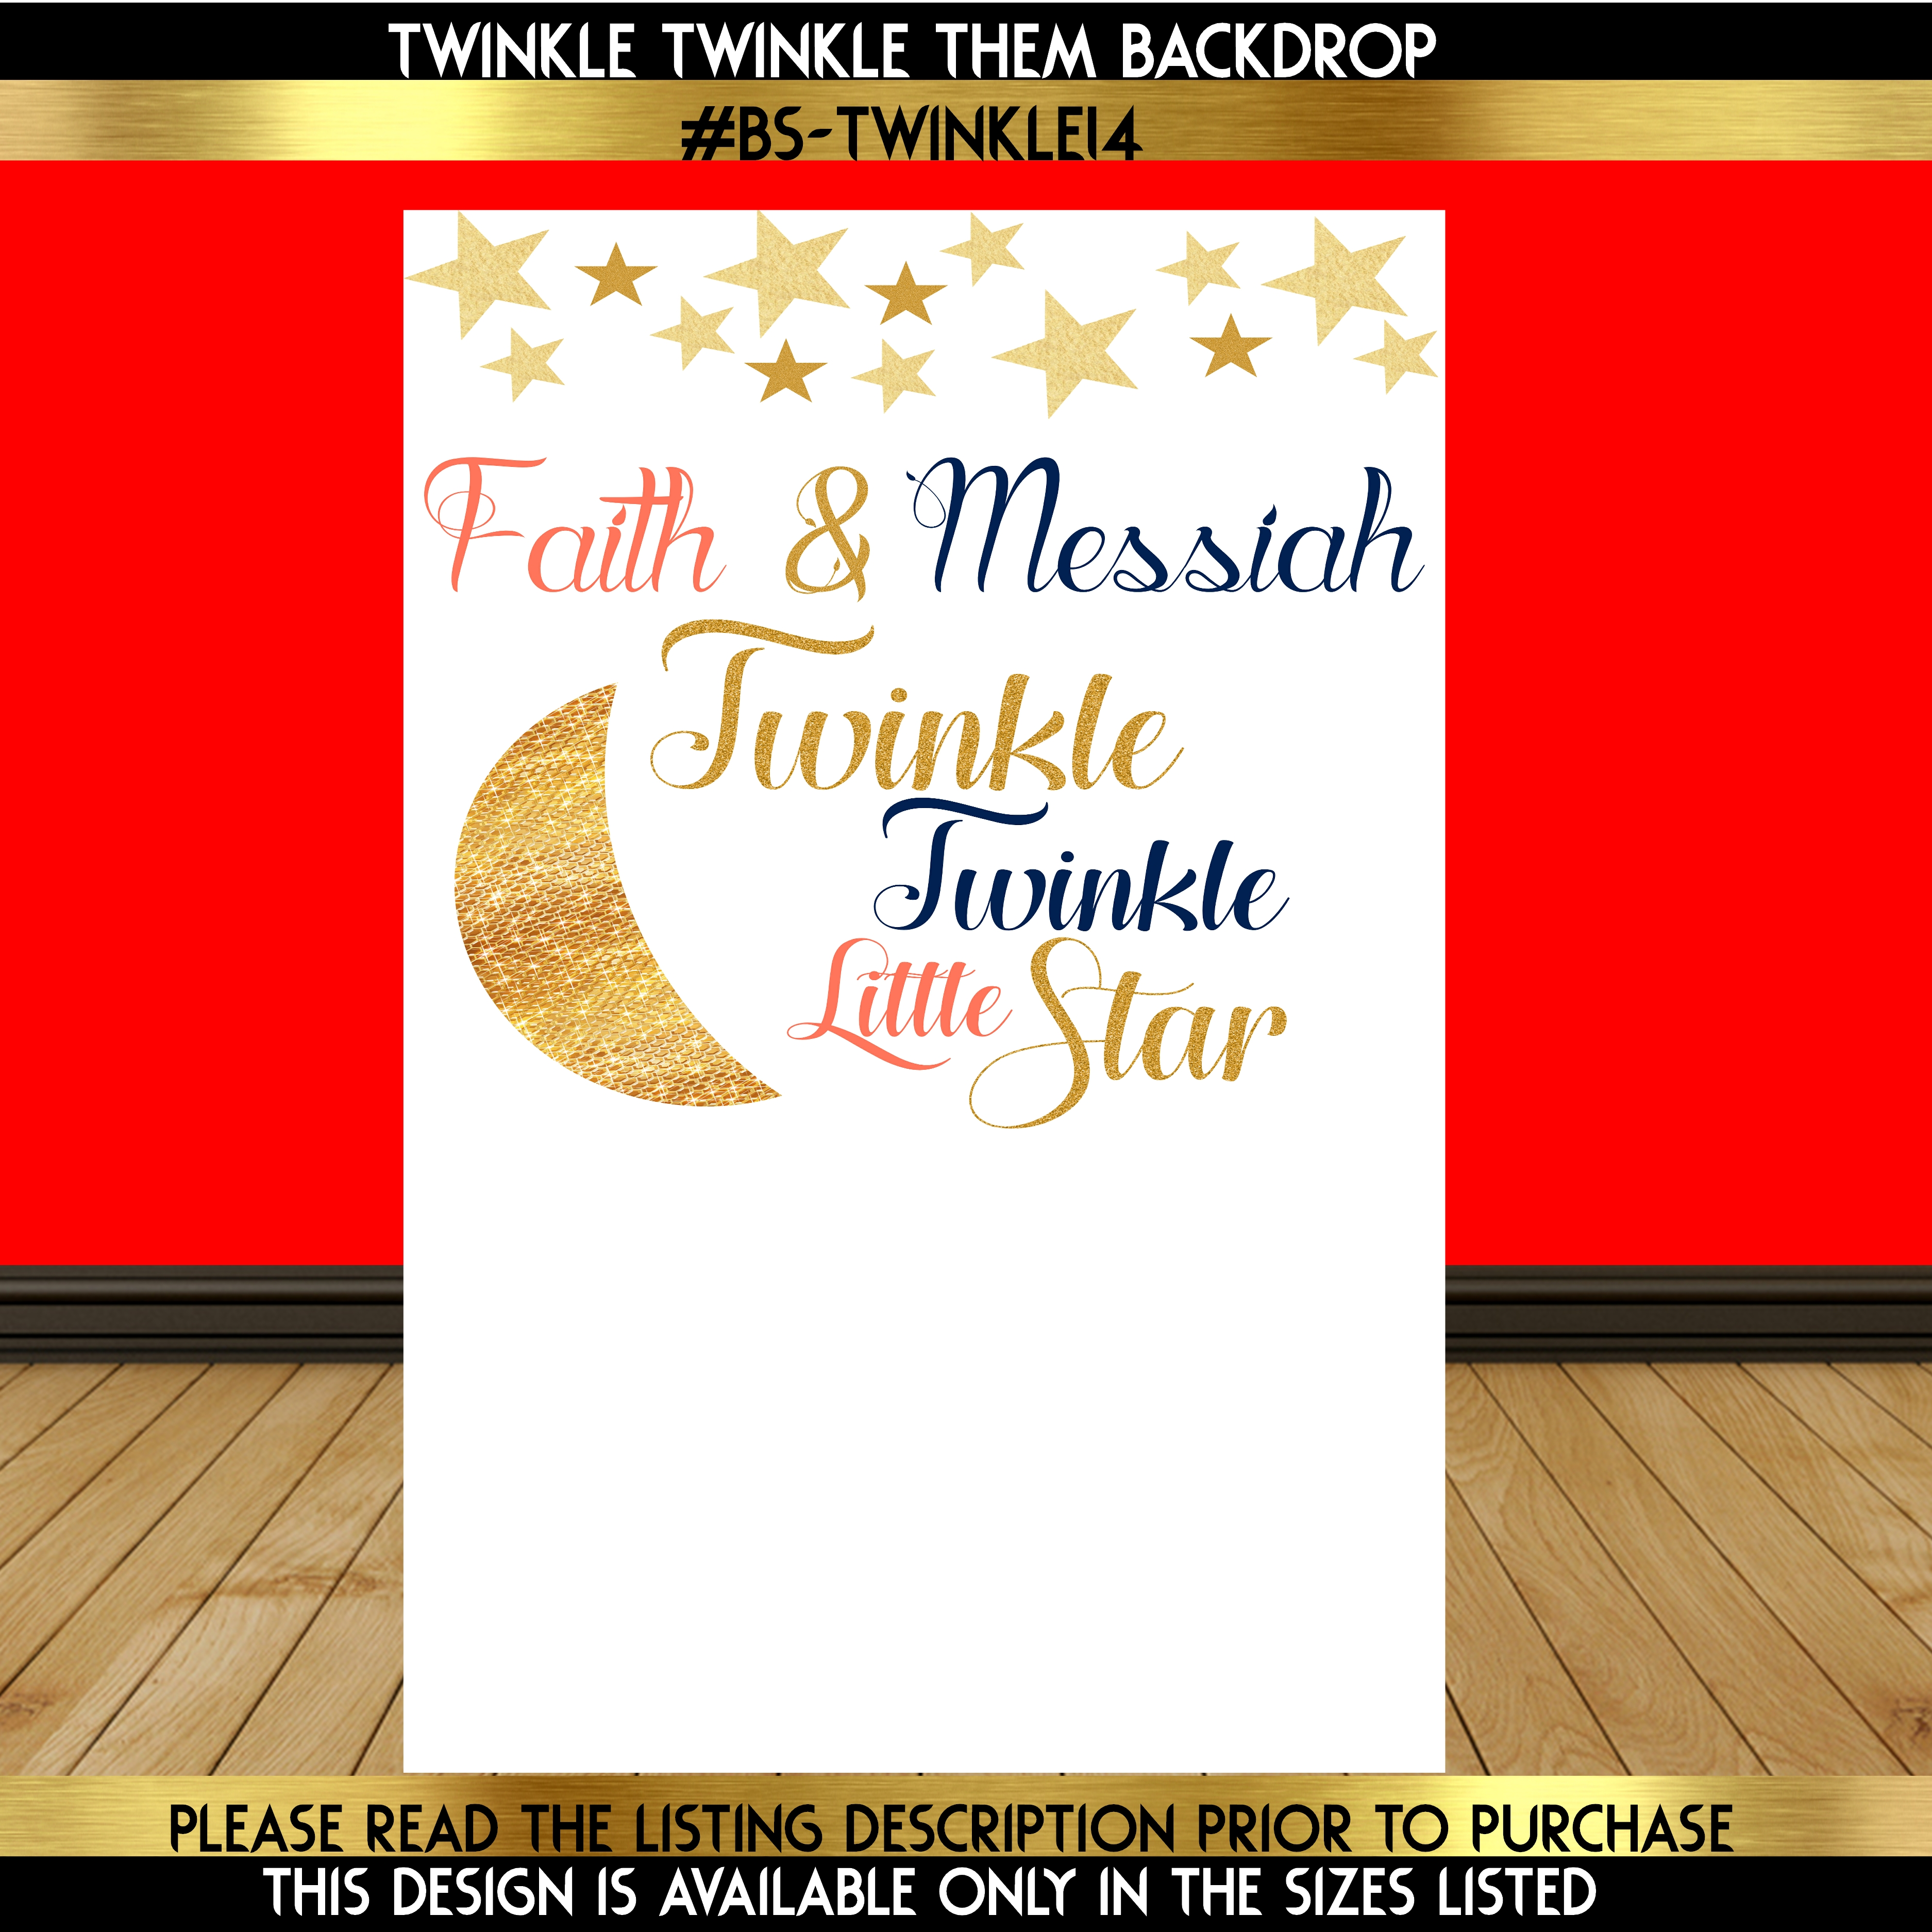 Twinkle Twinkle on with Gold Moon Backdrop